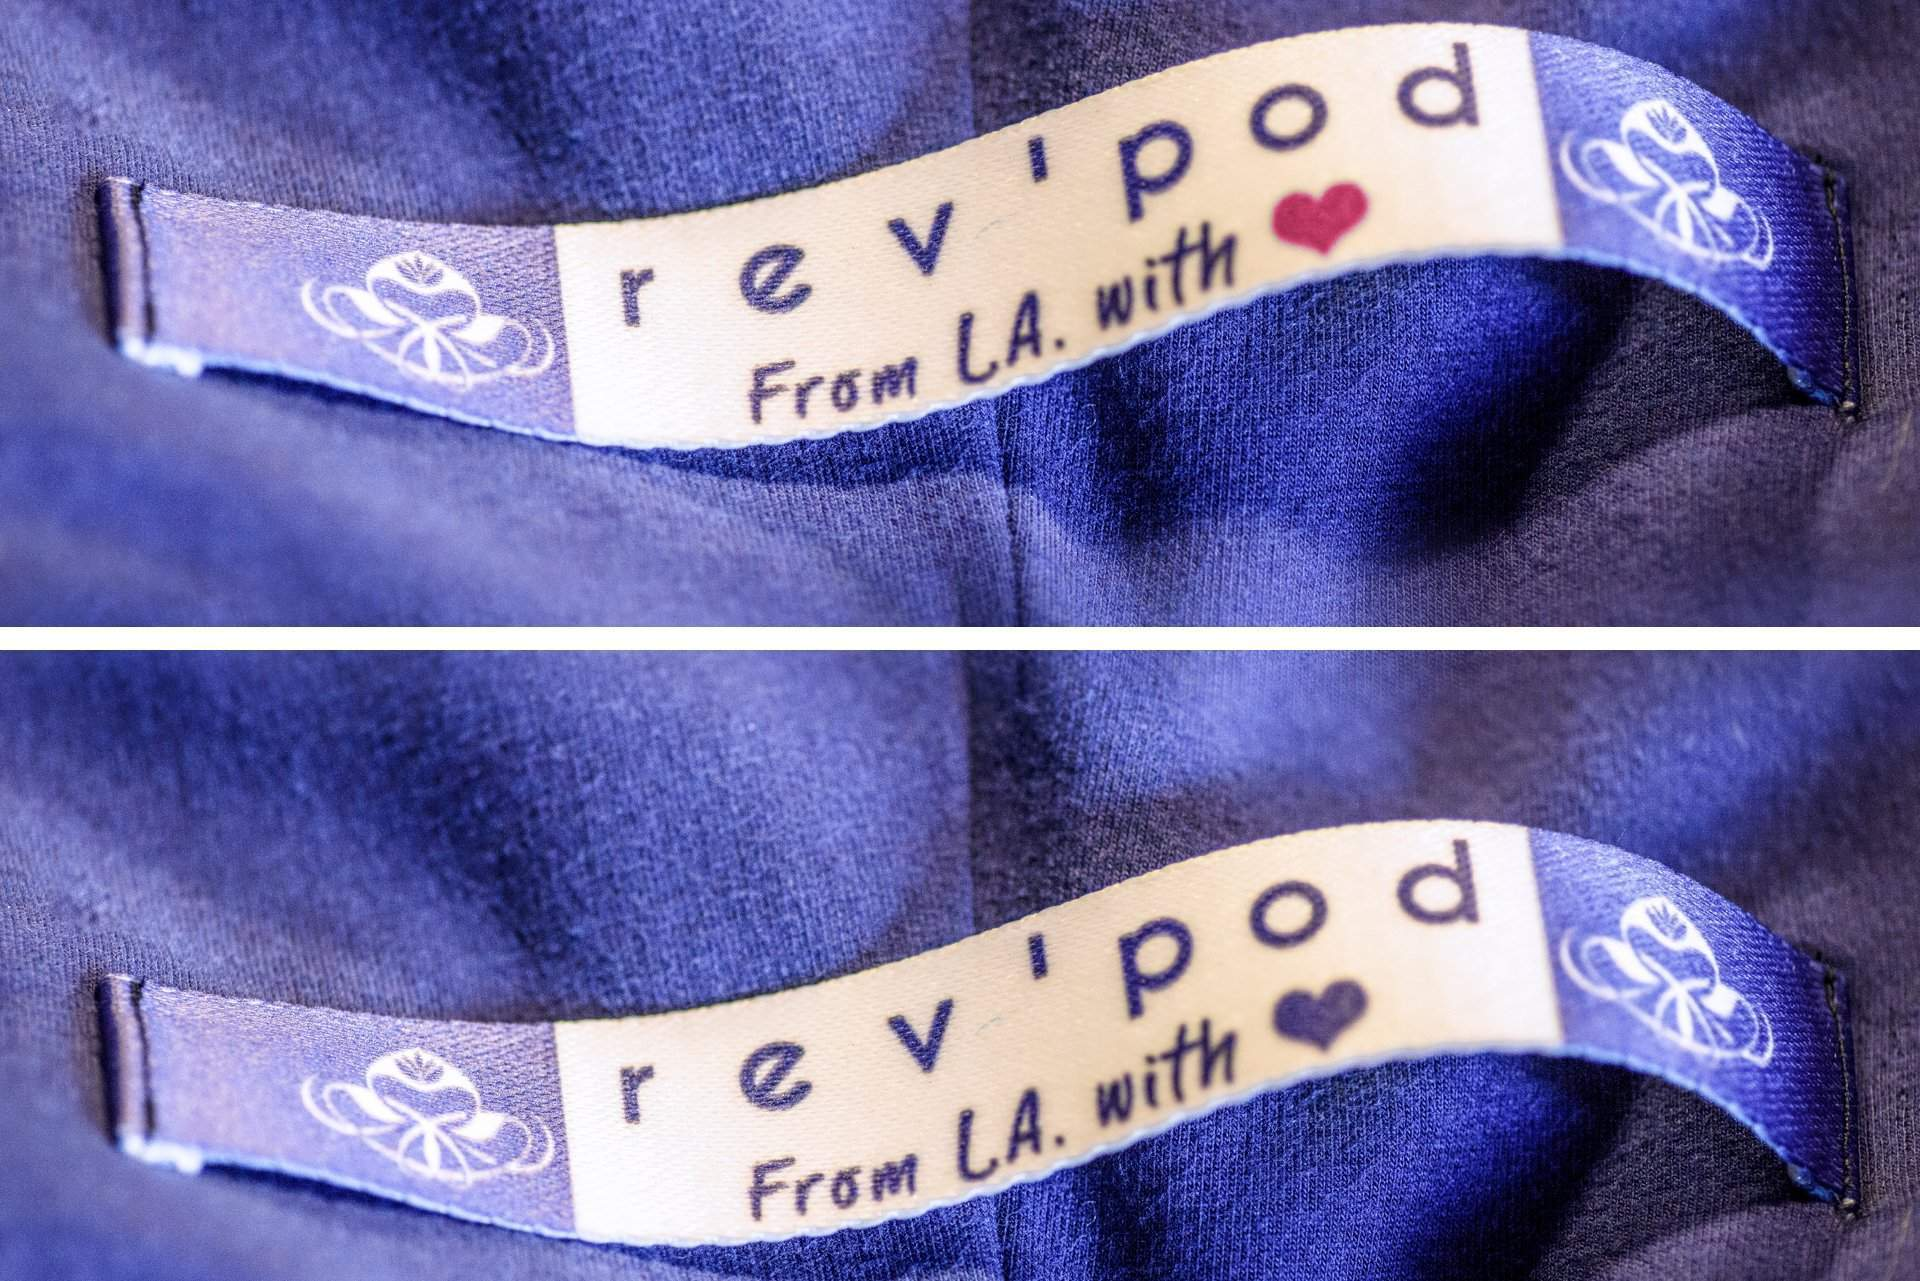 rev'pod™ | ultra-soft travel + loungewear | #revpod | Blue and Pink Hearts on Handle